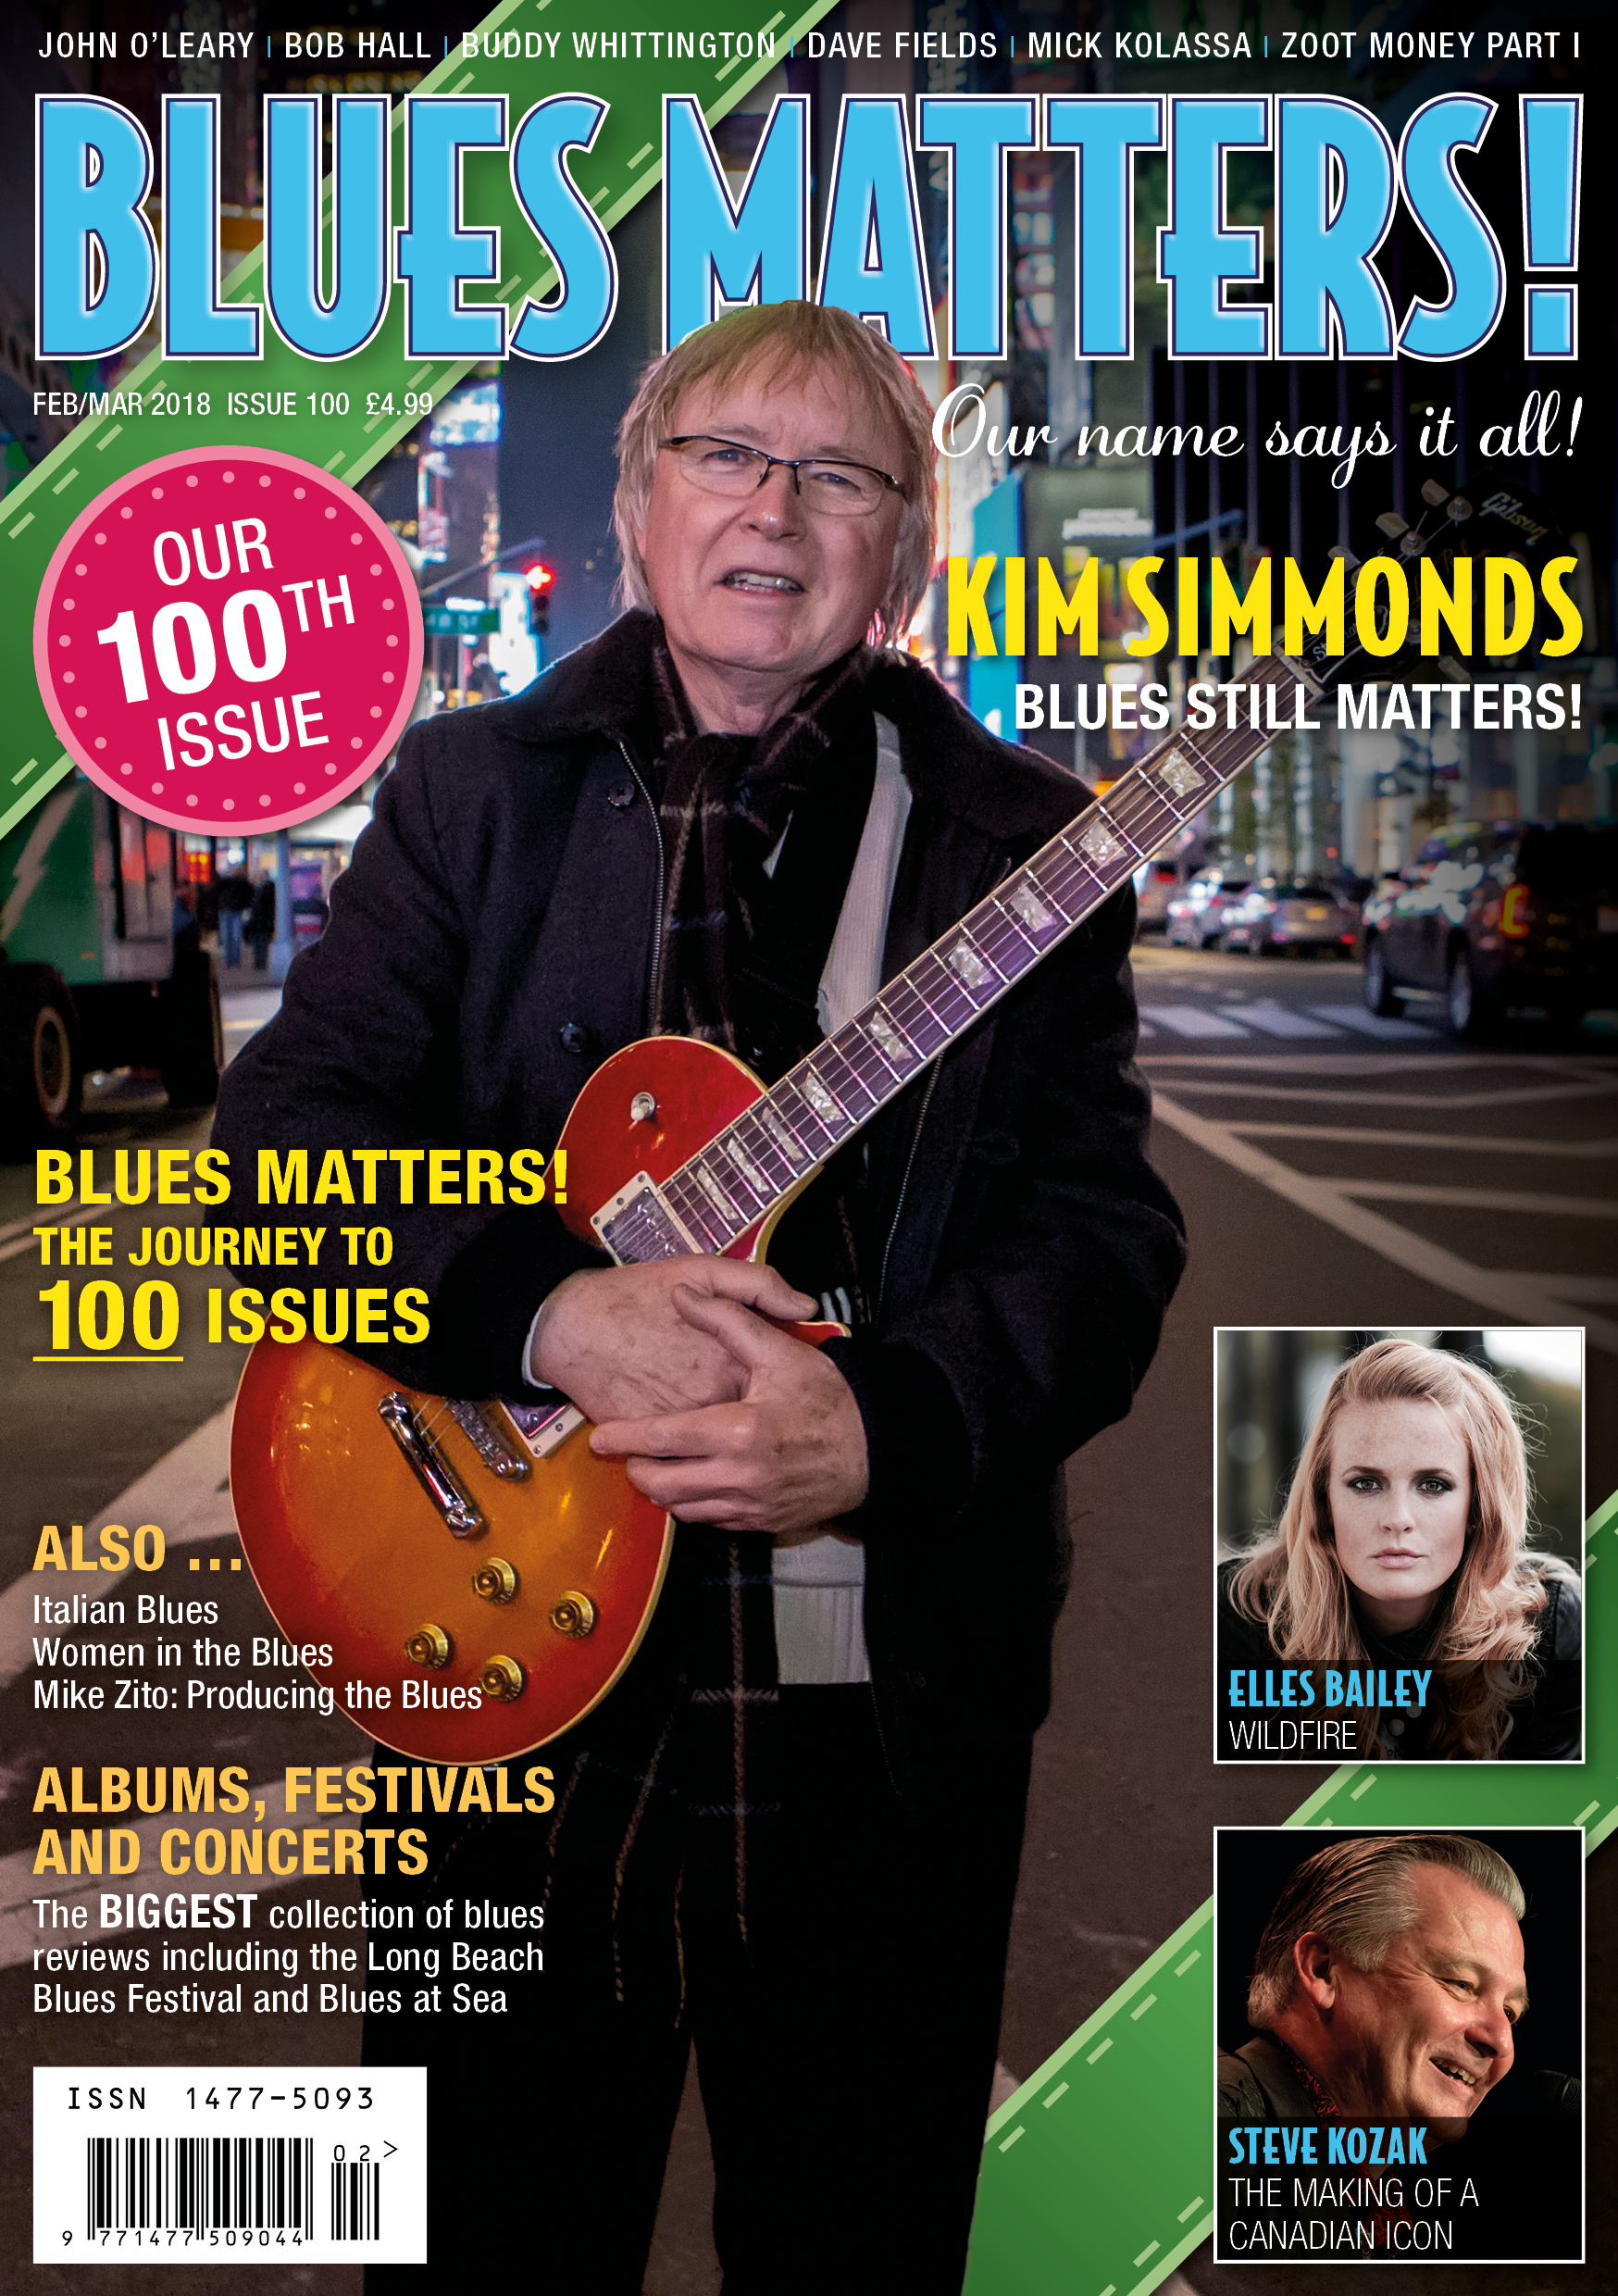 image of the 100th cover for Blues Matters magazine